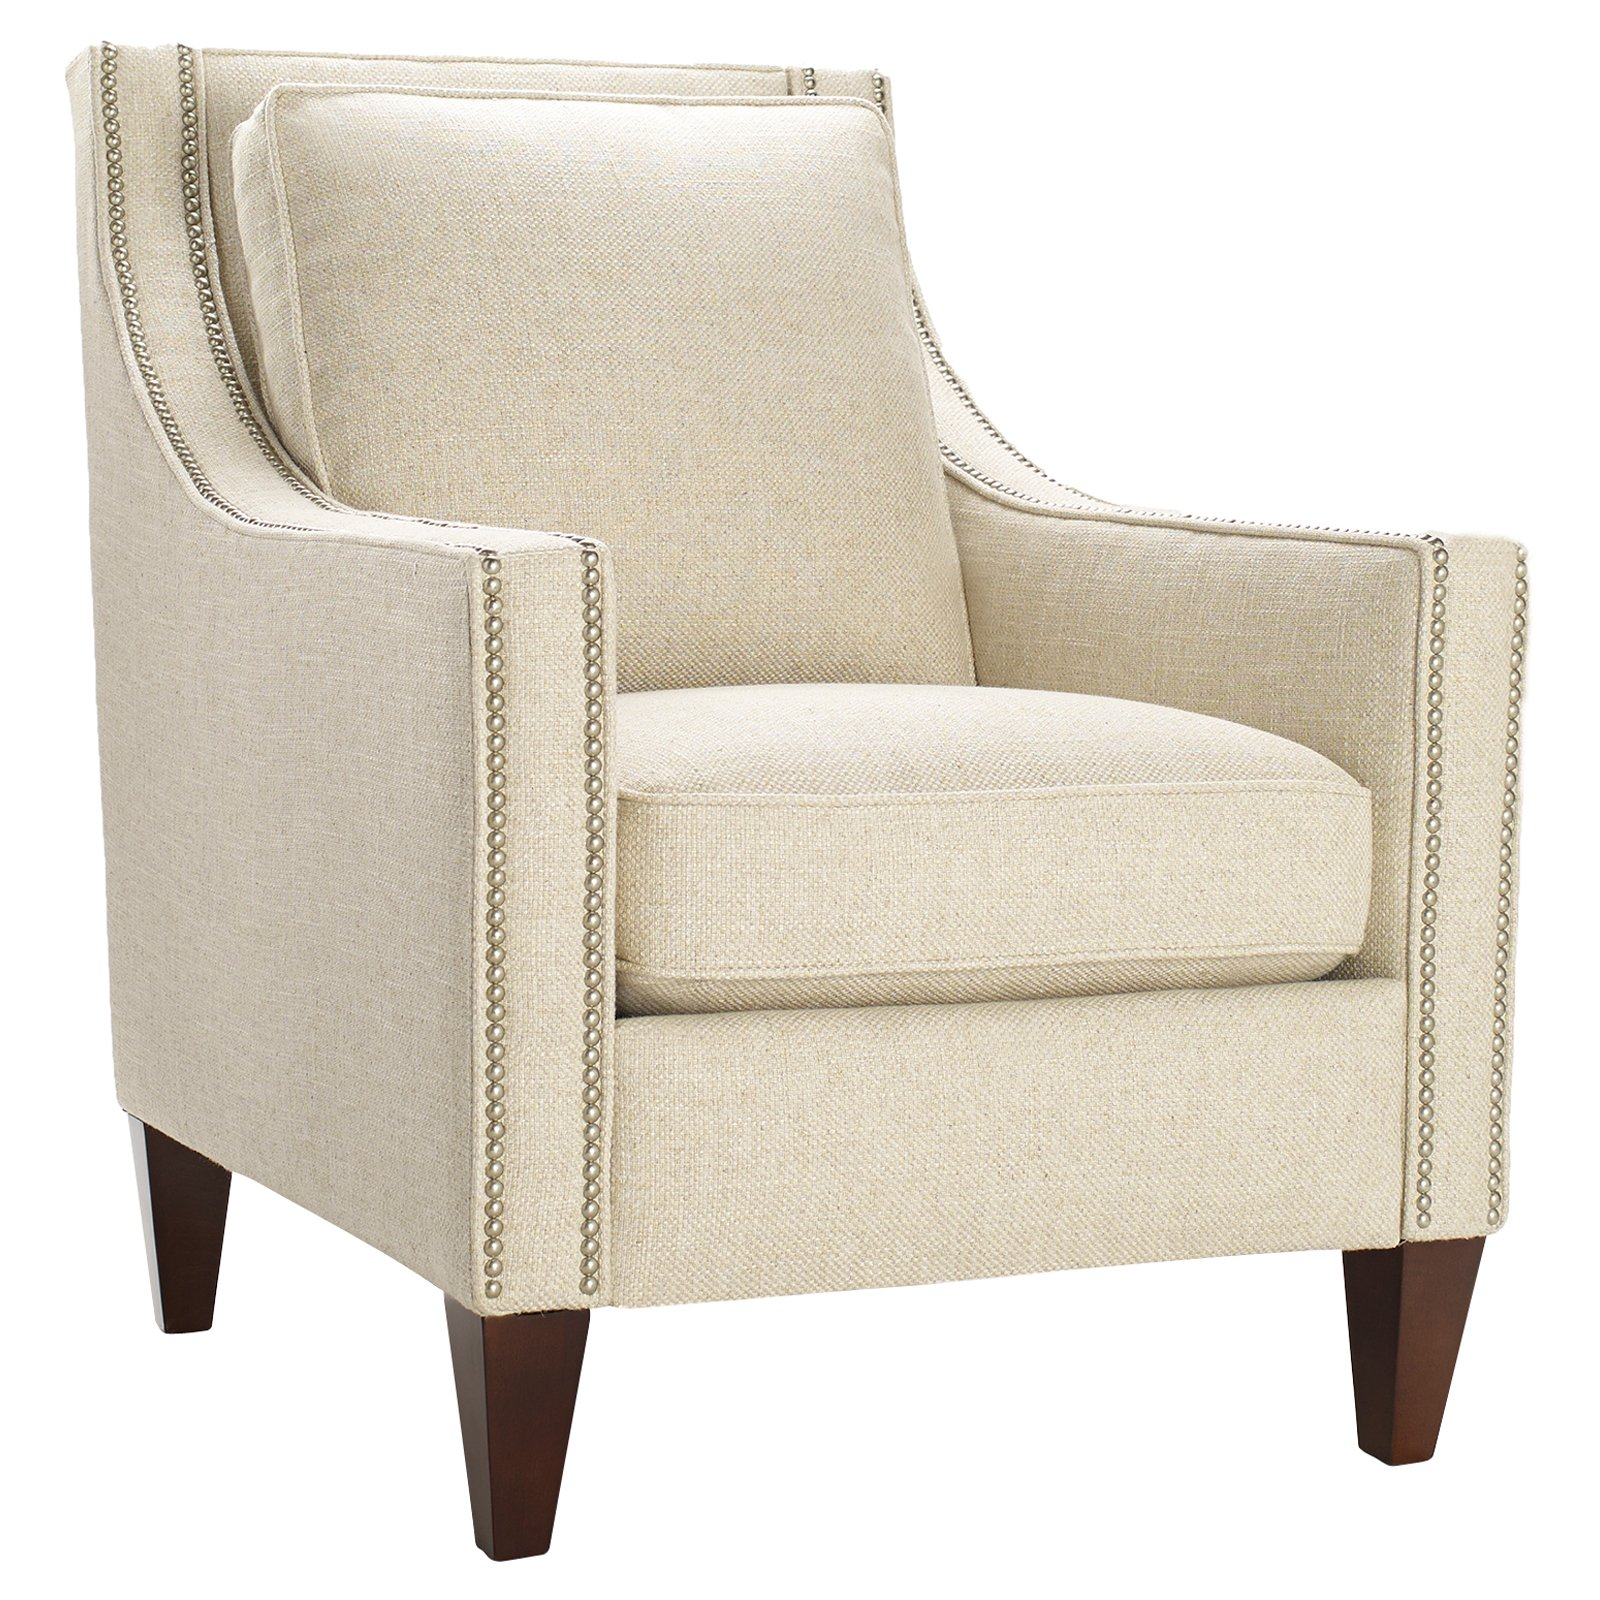 Best accent chair homesfeed for Living room accent chairs